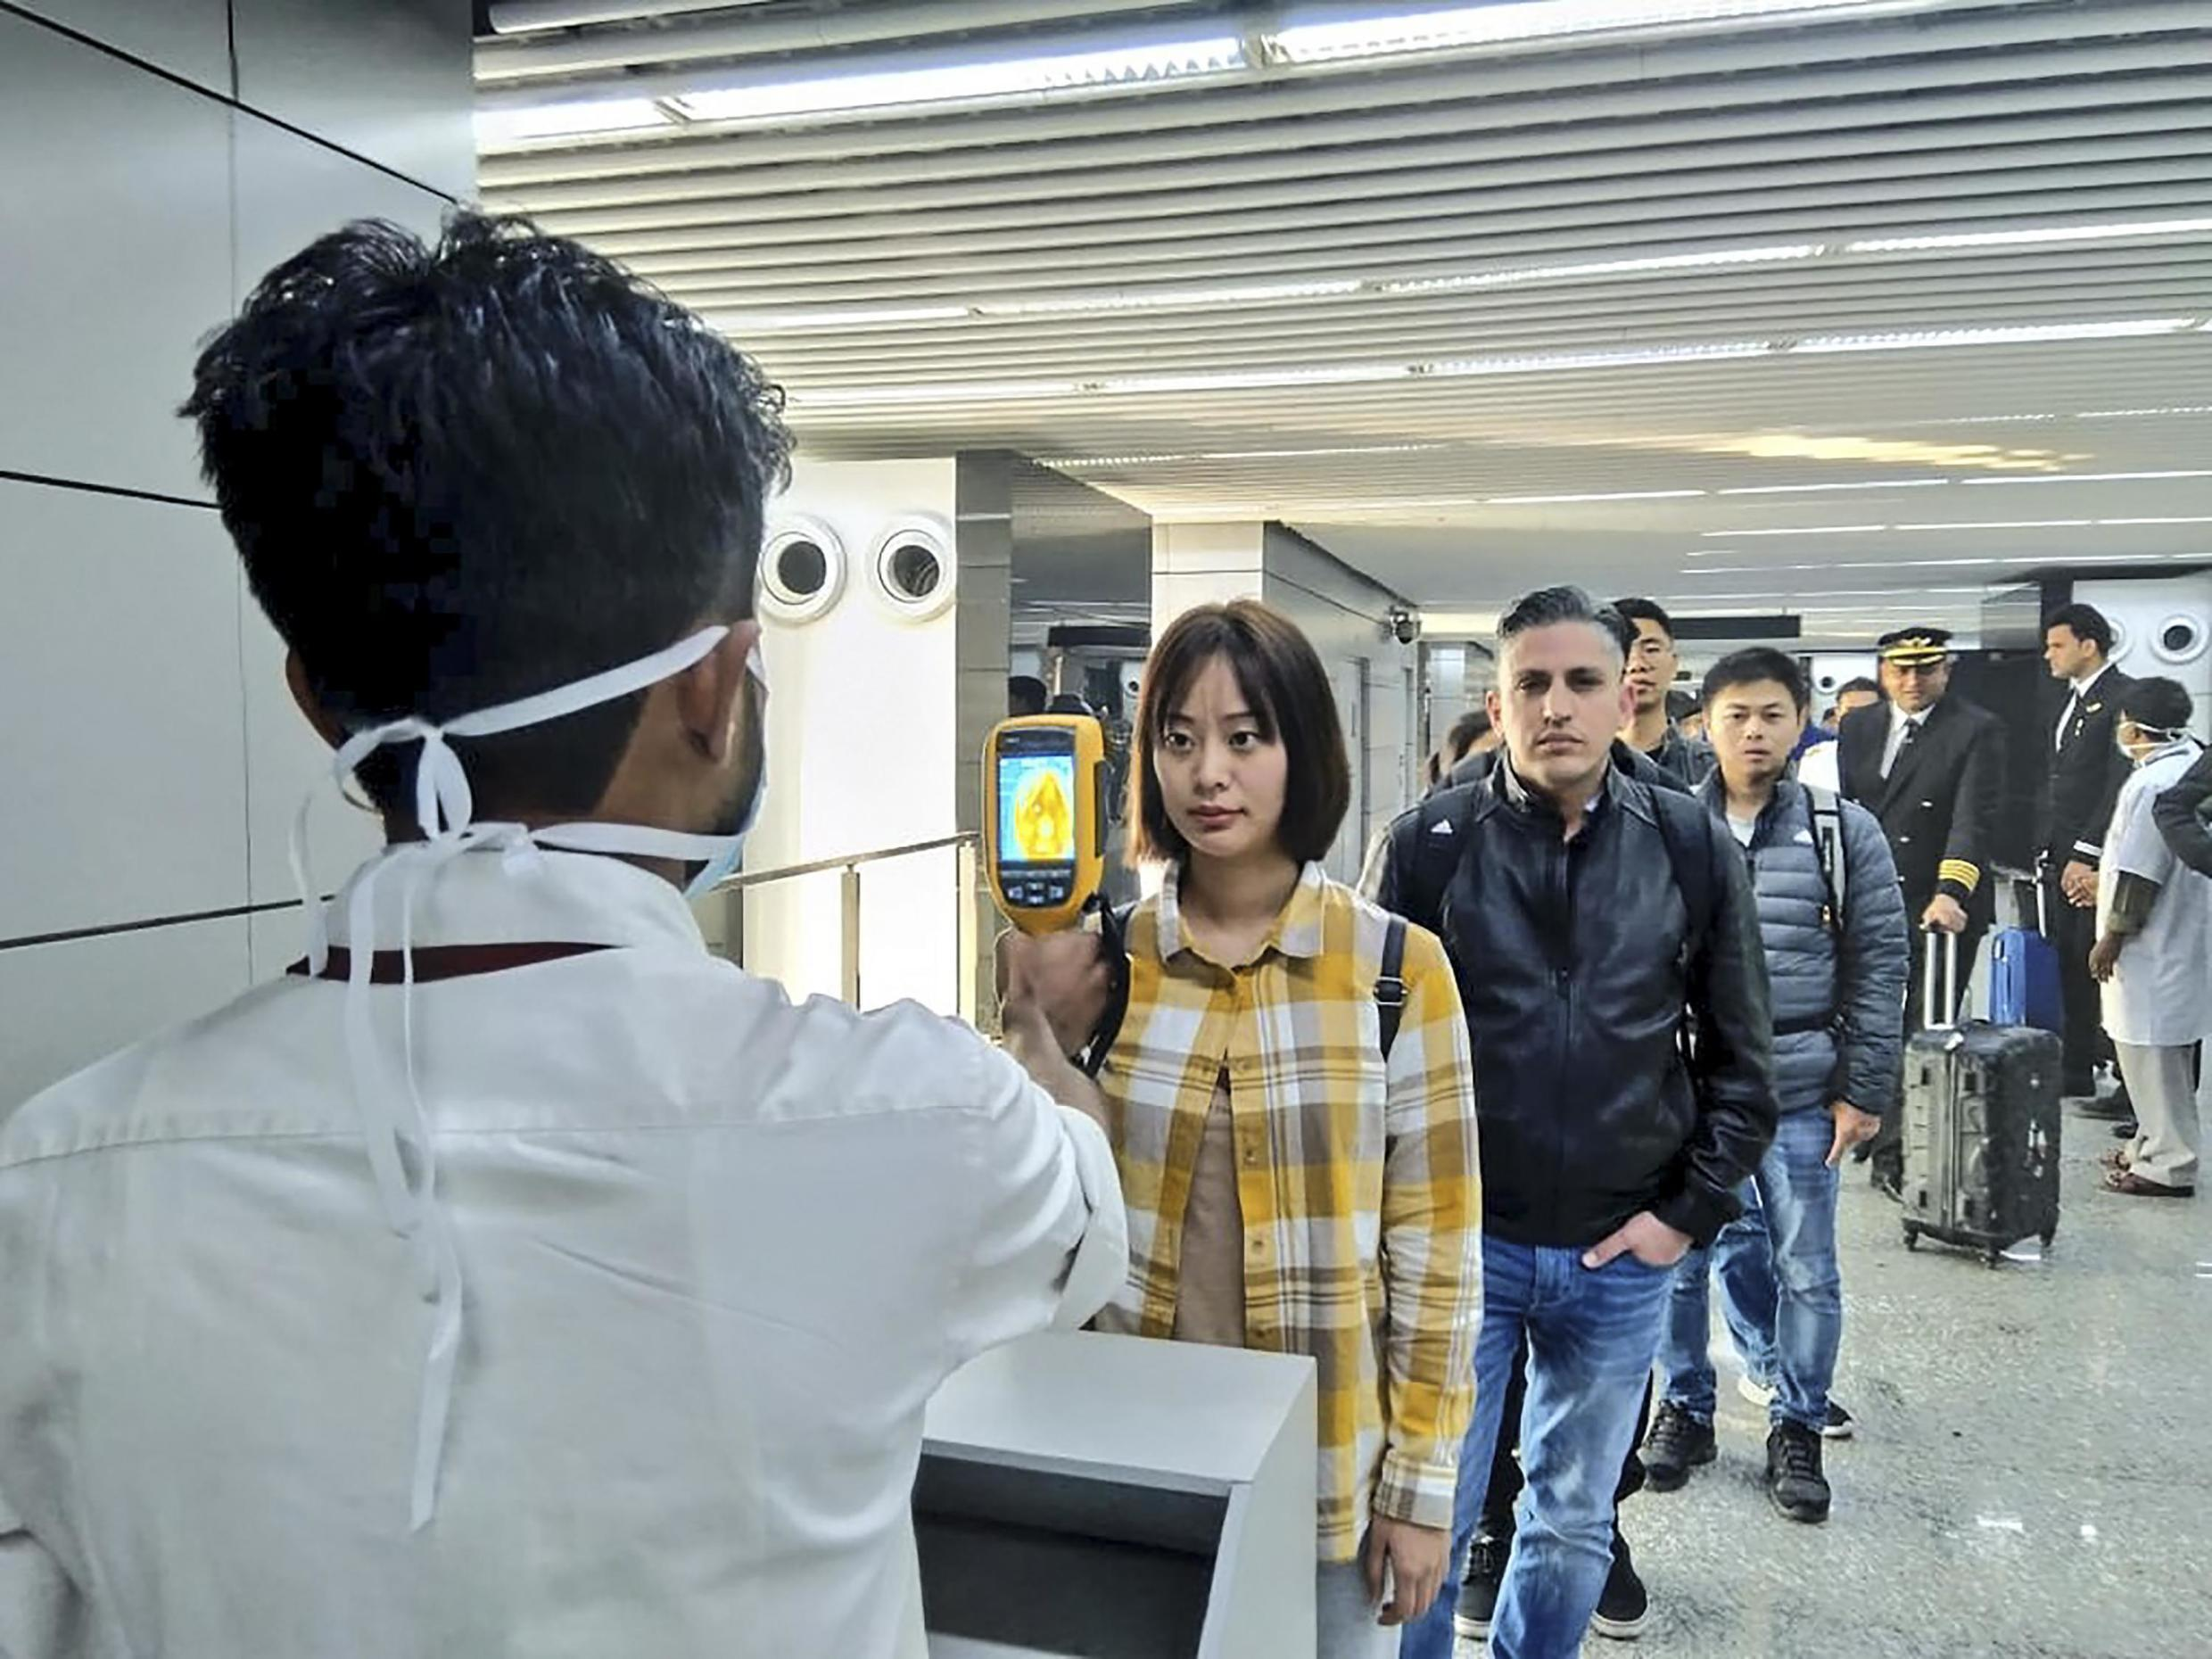 Authorities in Calcutta have put temperature scans in place for passengers arriving from Wuhan, China, epicentre of the novel coronavirus, 30 January 2020.